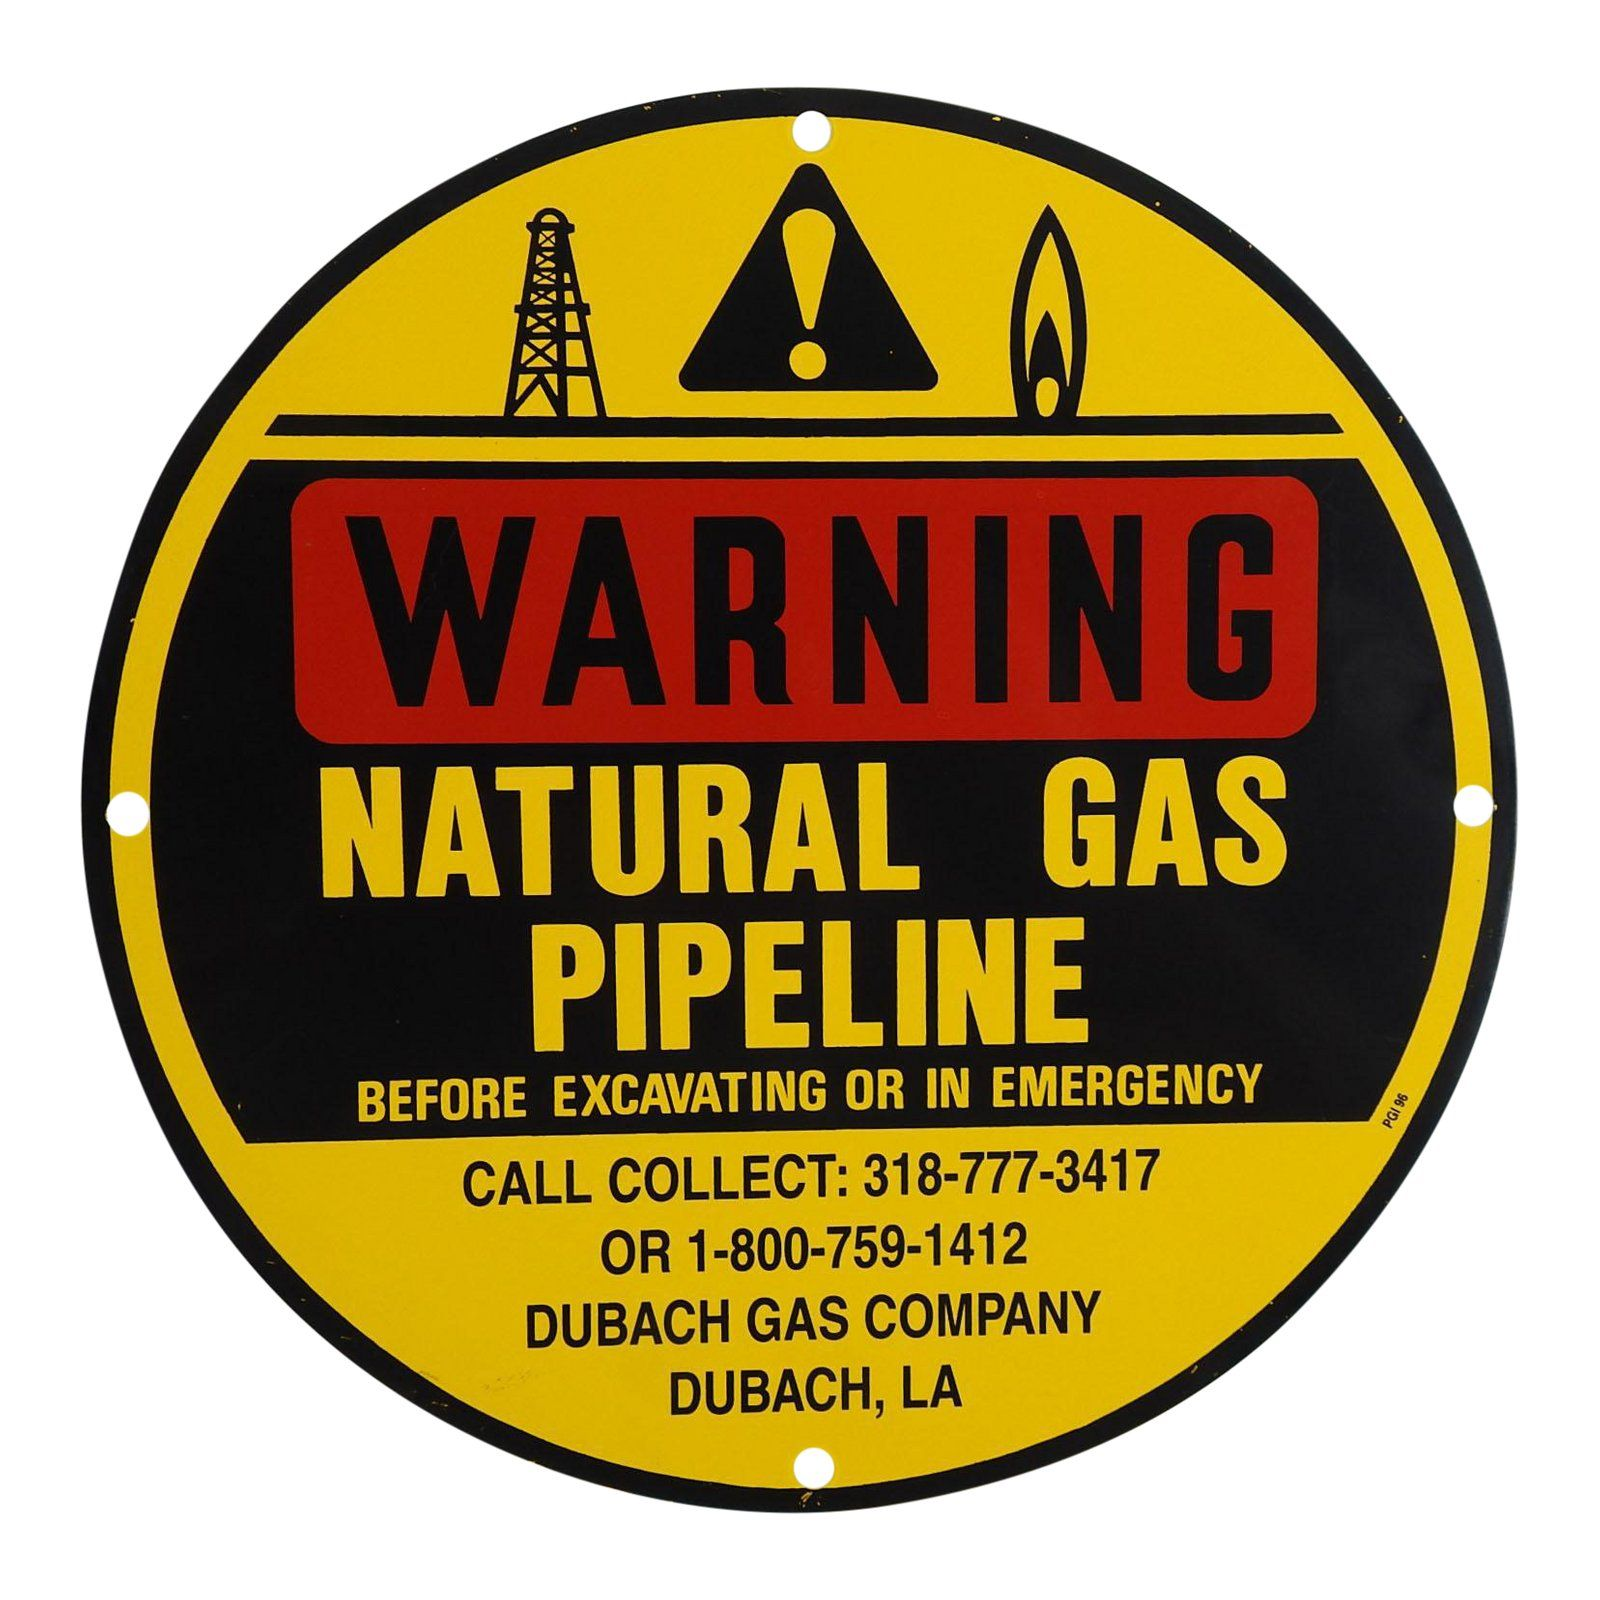 Natural Gas Pipeline Warning Sign For Sale, 26, air